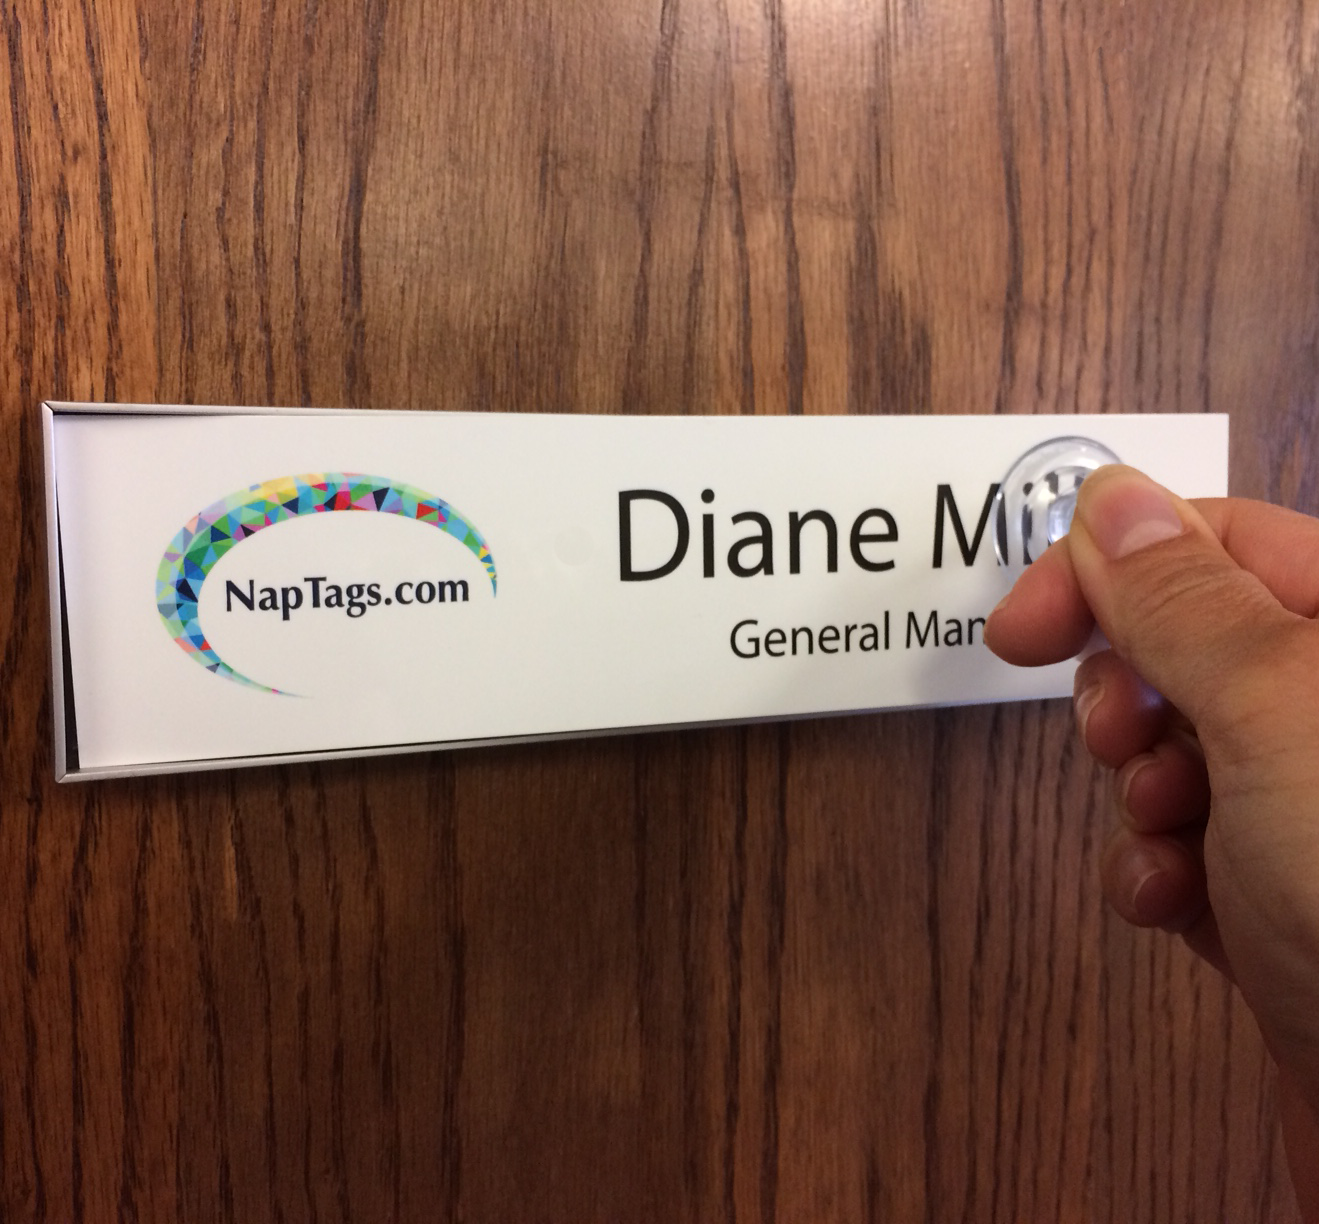 Changeable Name Plate Frames for Walls or Doors 8\